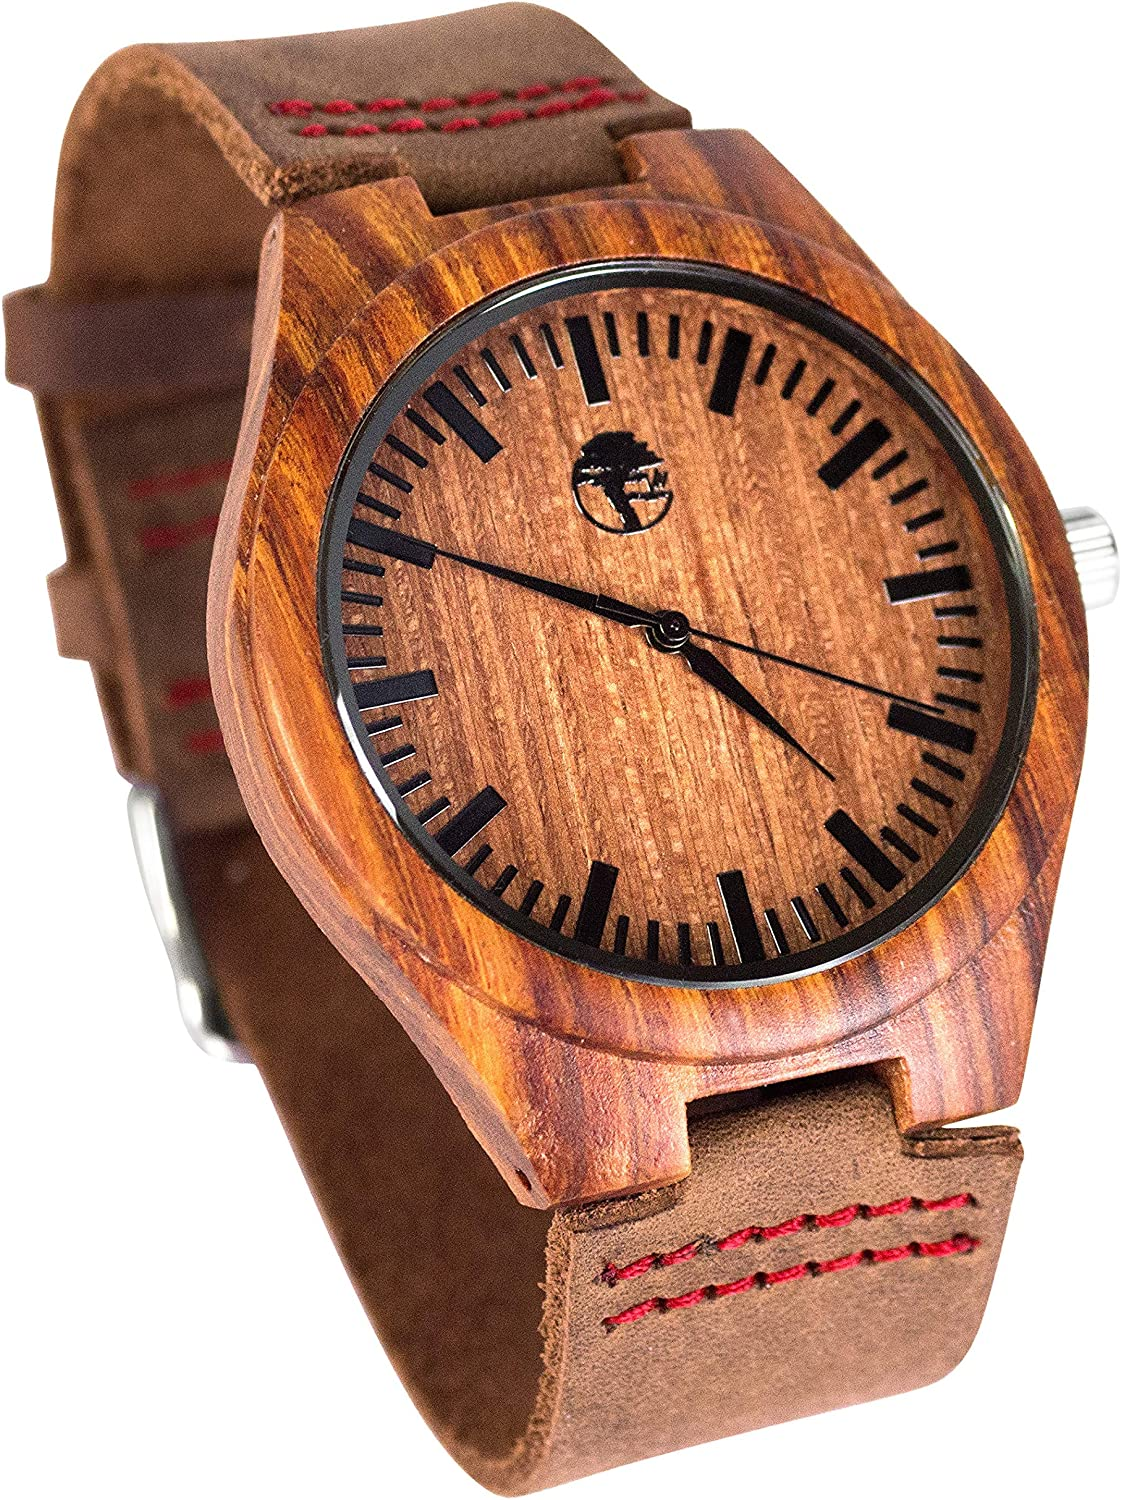 Men s Wood Watch, Natural Bamboo and Sandalwood with Quartz Movement, Genuine Leather Strap